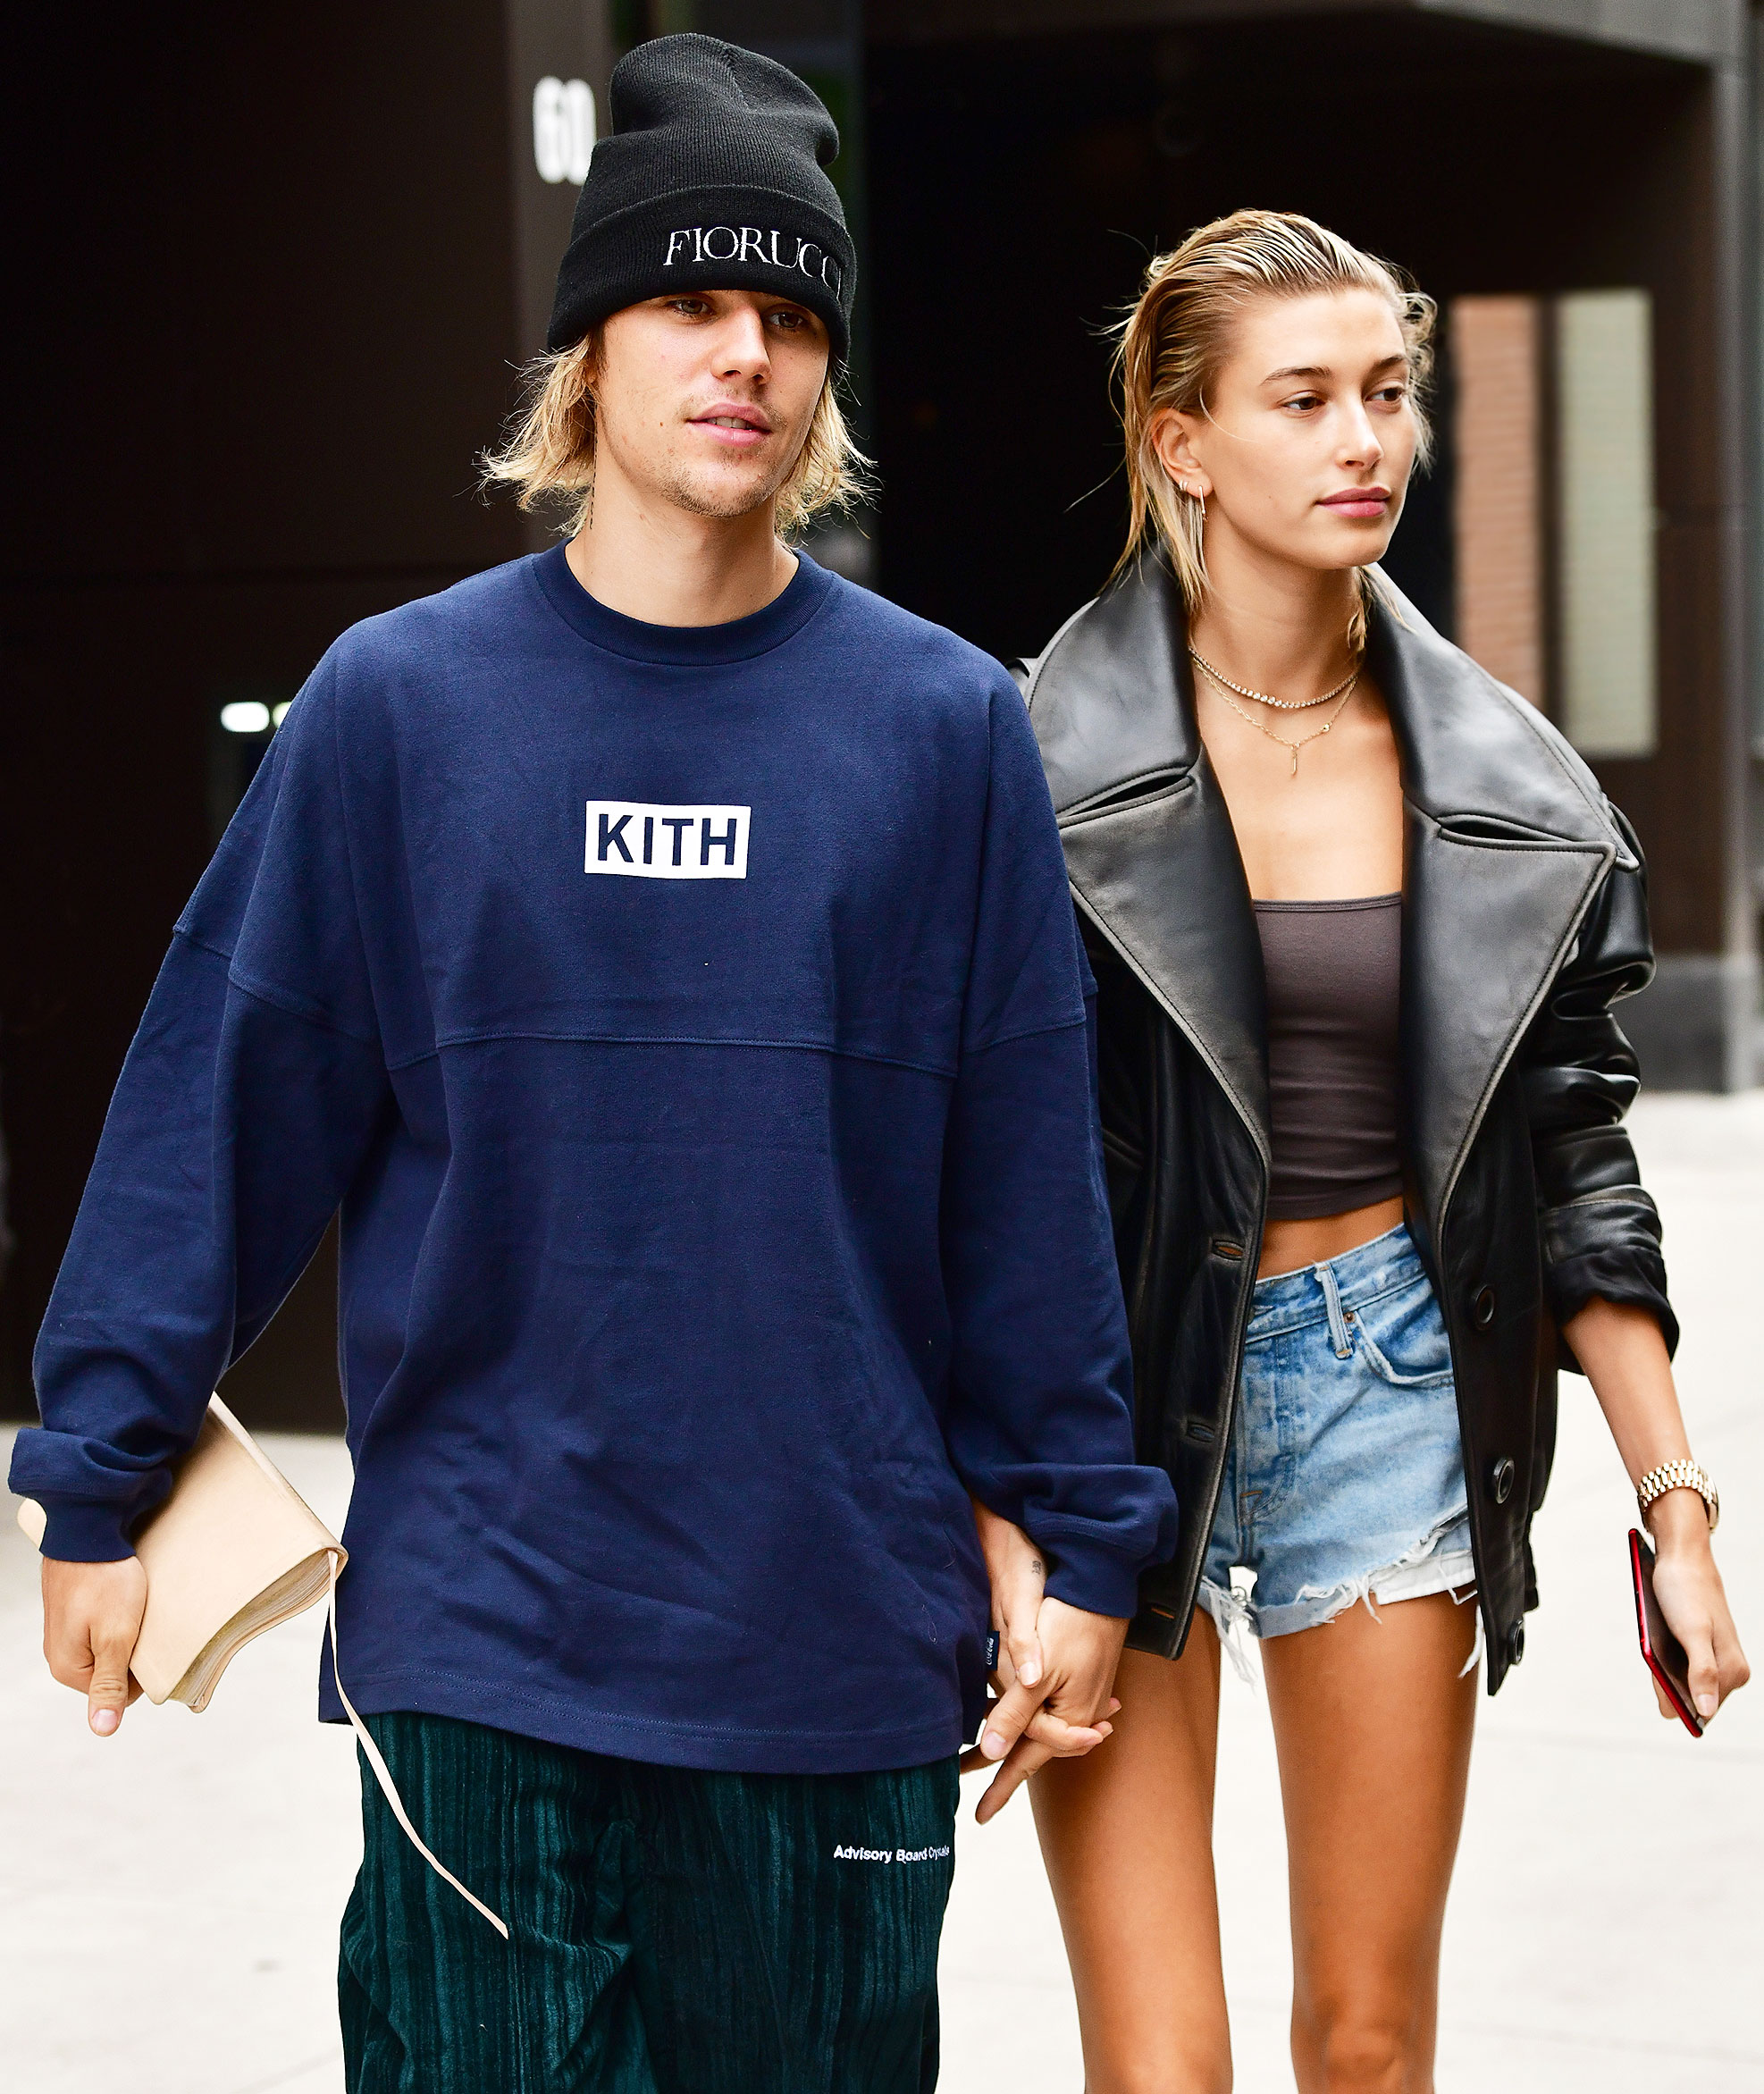 Hailey's Beauty Trademark Was Rejected Because of Hubby Justin Bieber thumbnail